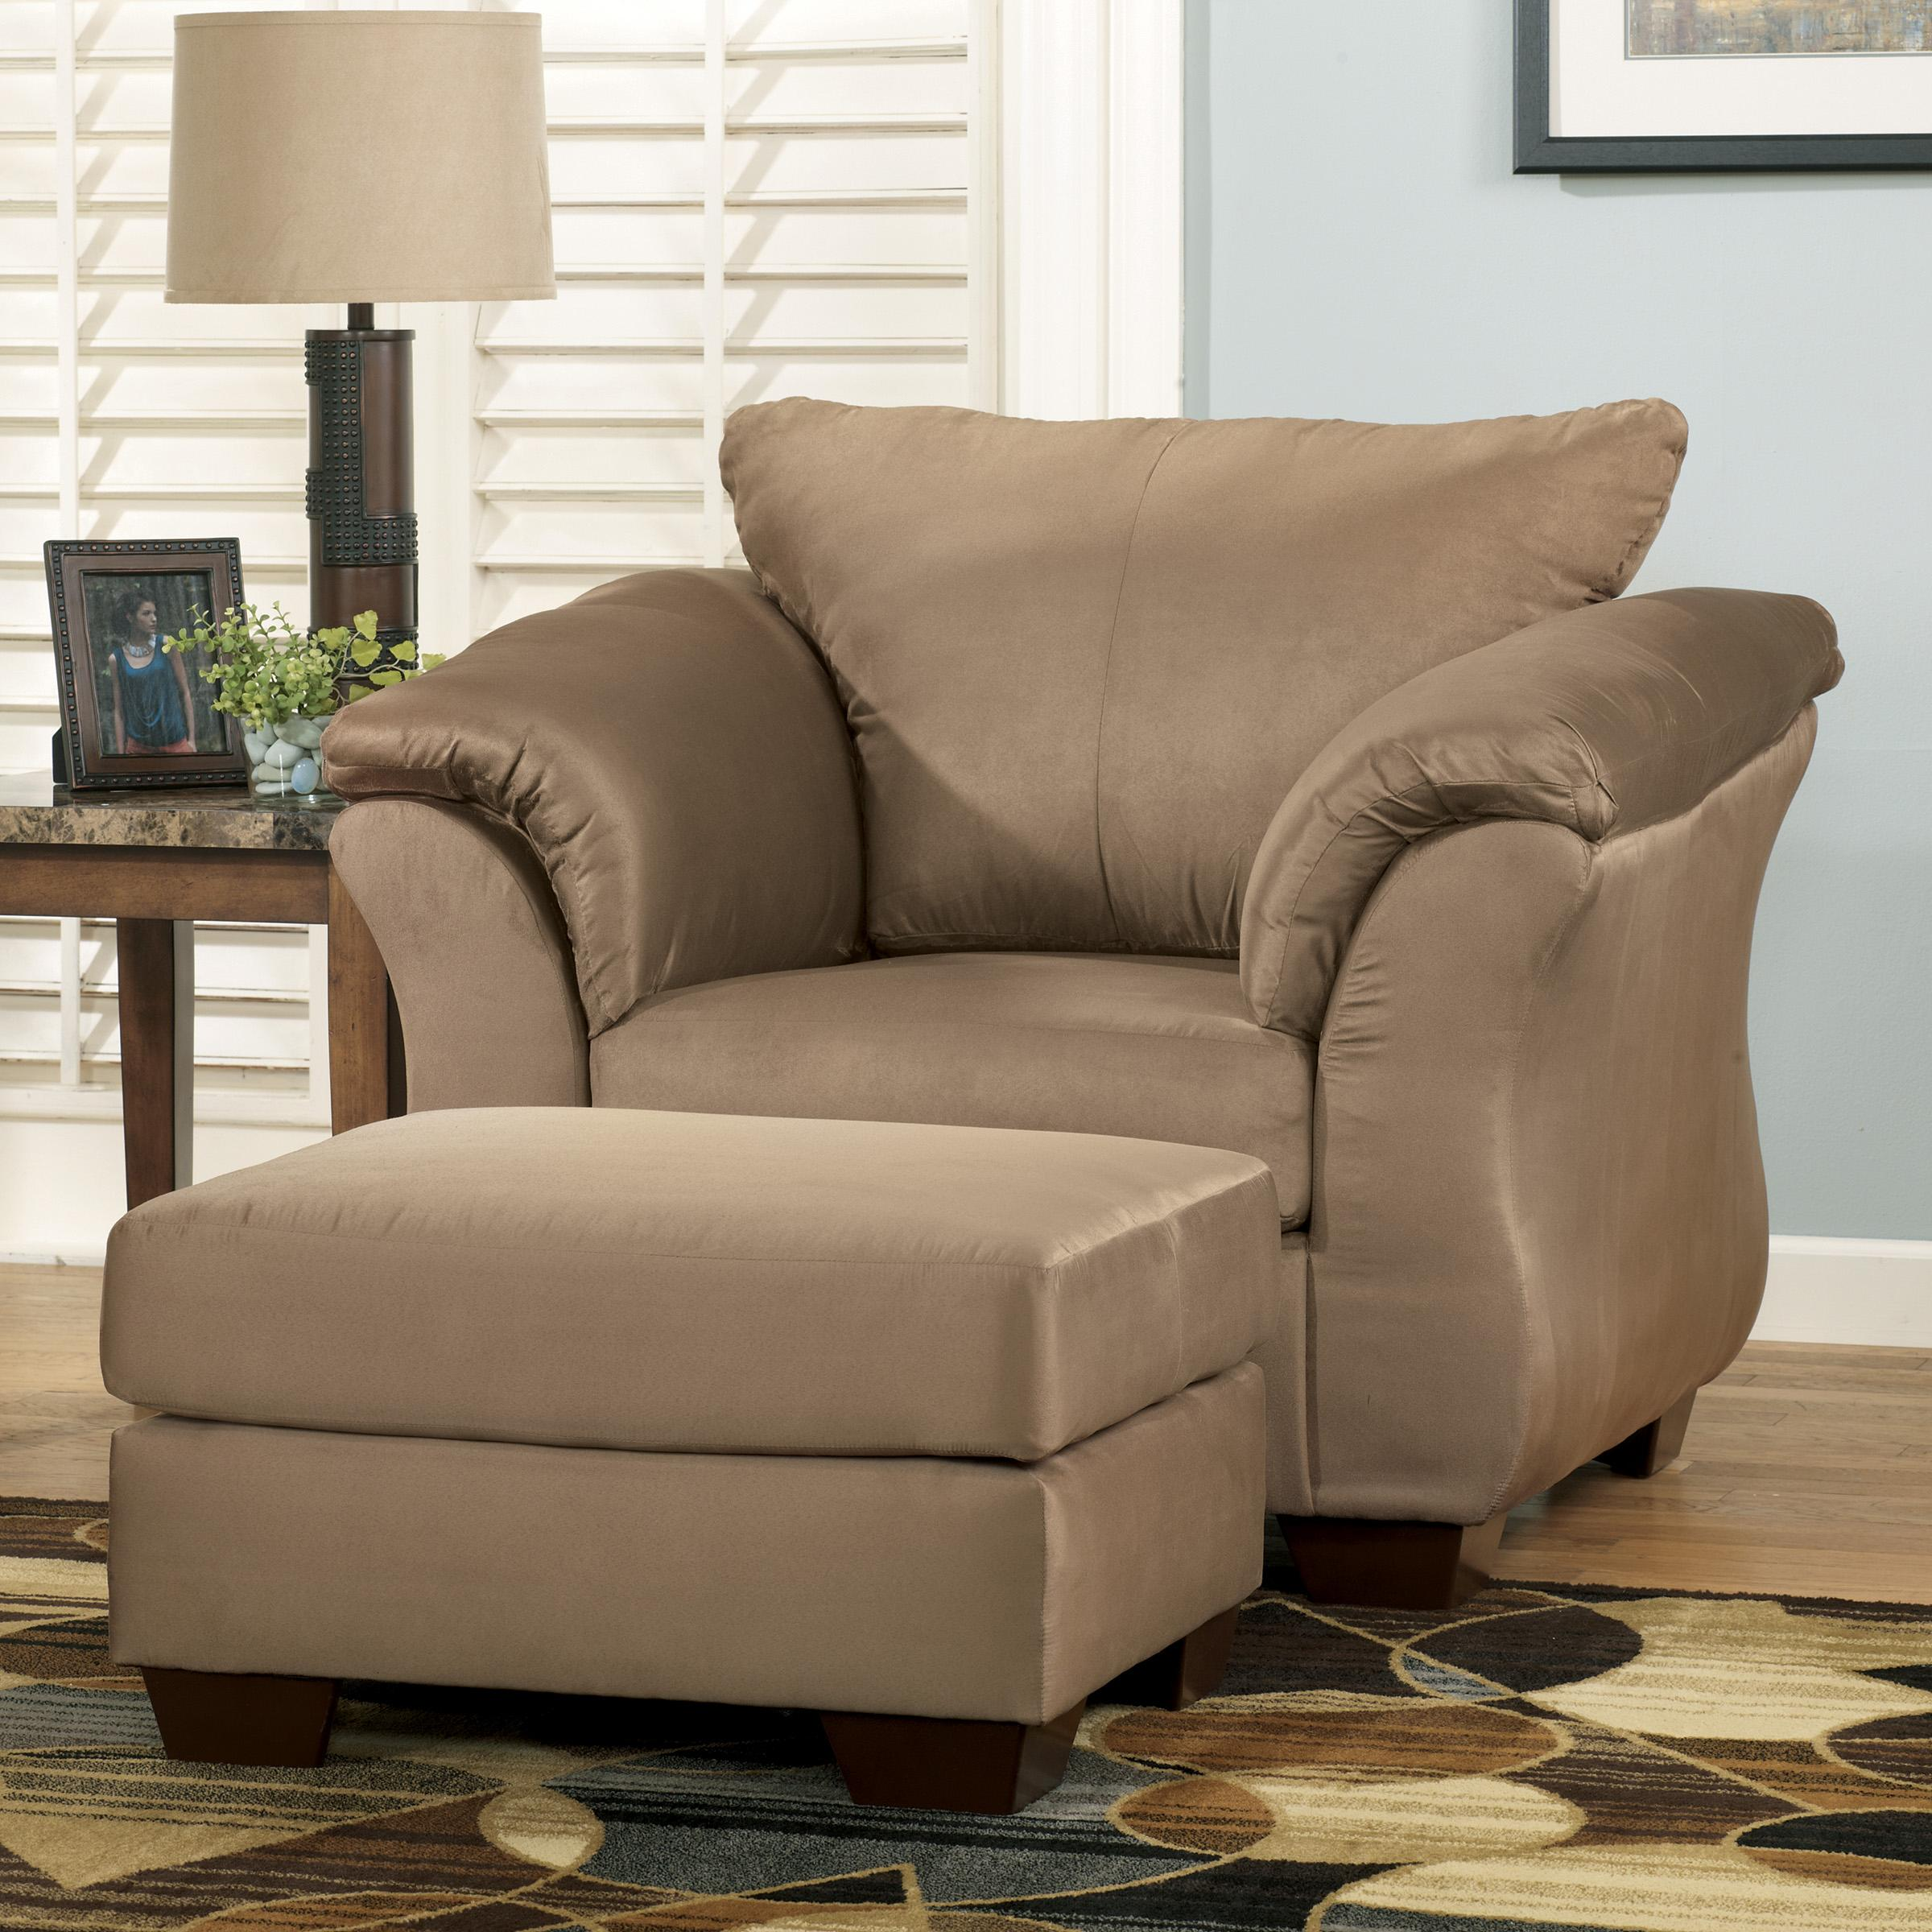 Darcy - Mocha Upholstered Chair and Ottoman by Signature at Walker's Furniture